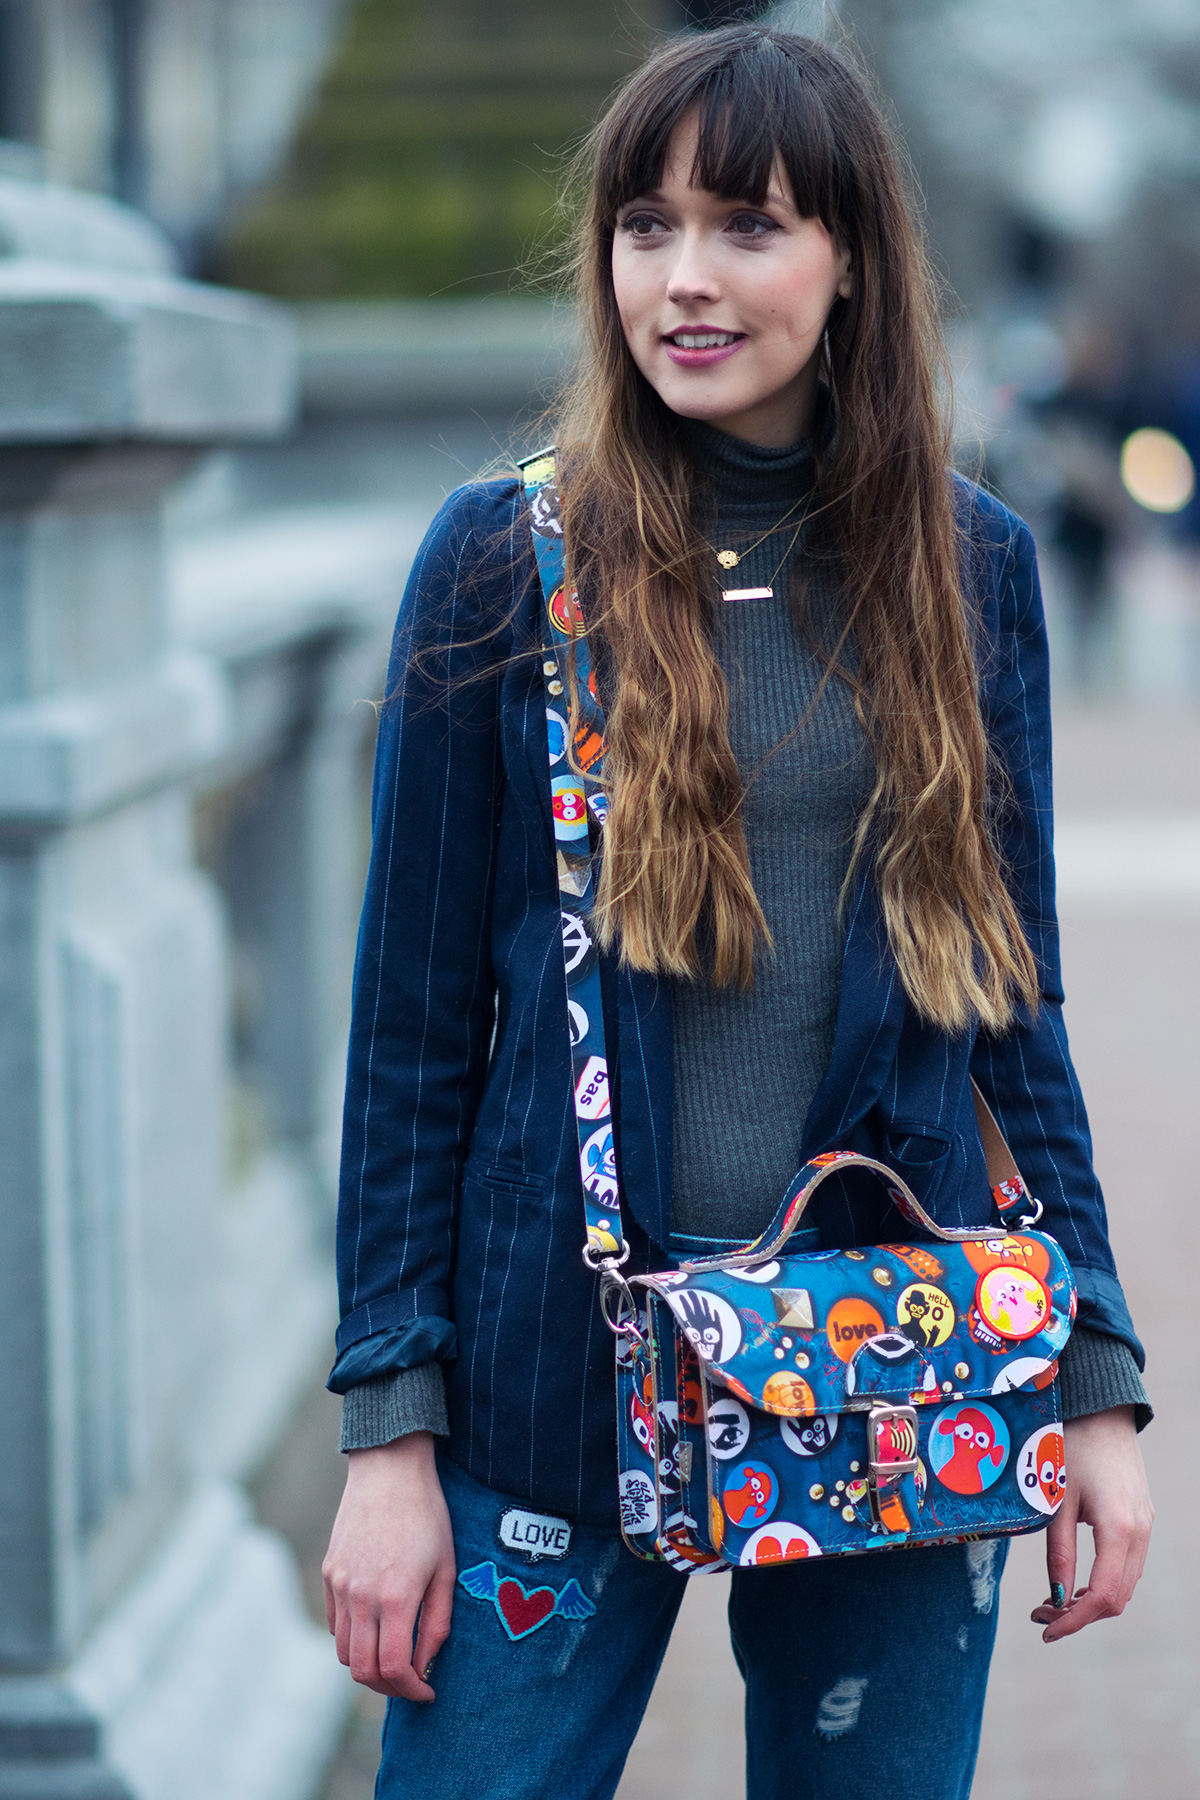 old-school-bags-bas-kosters-patchwork-trend